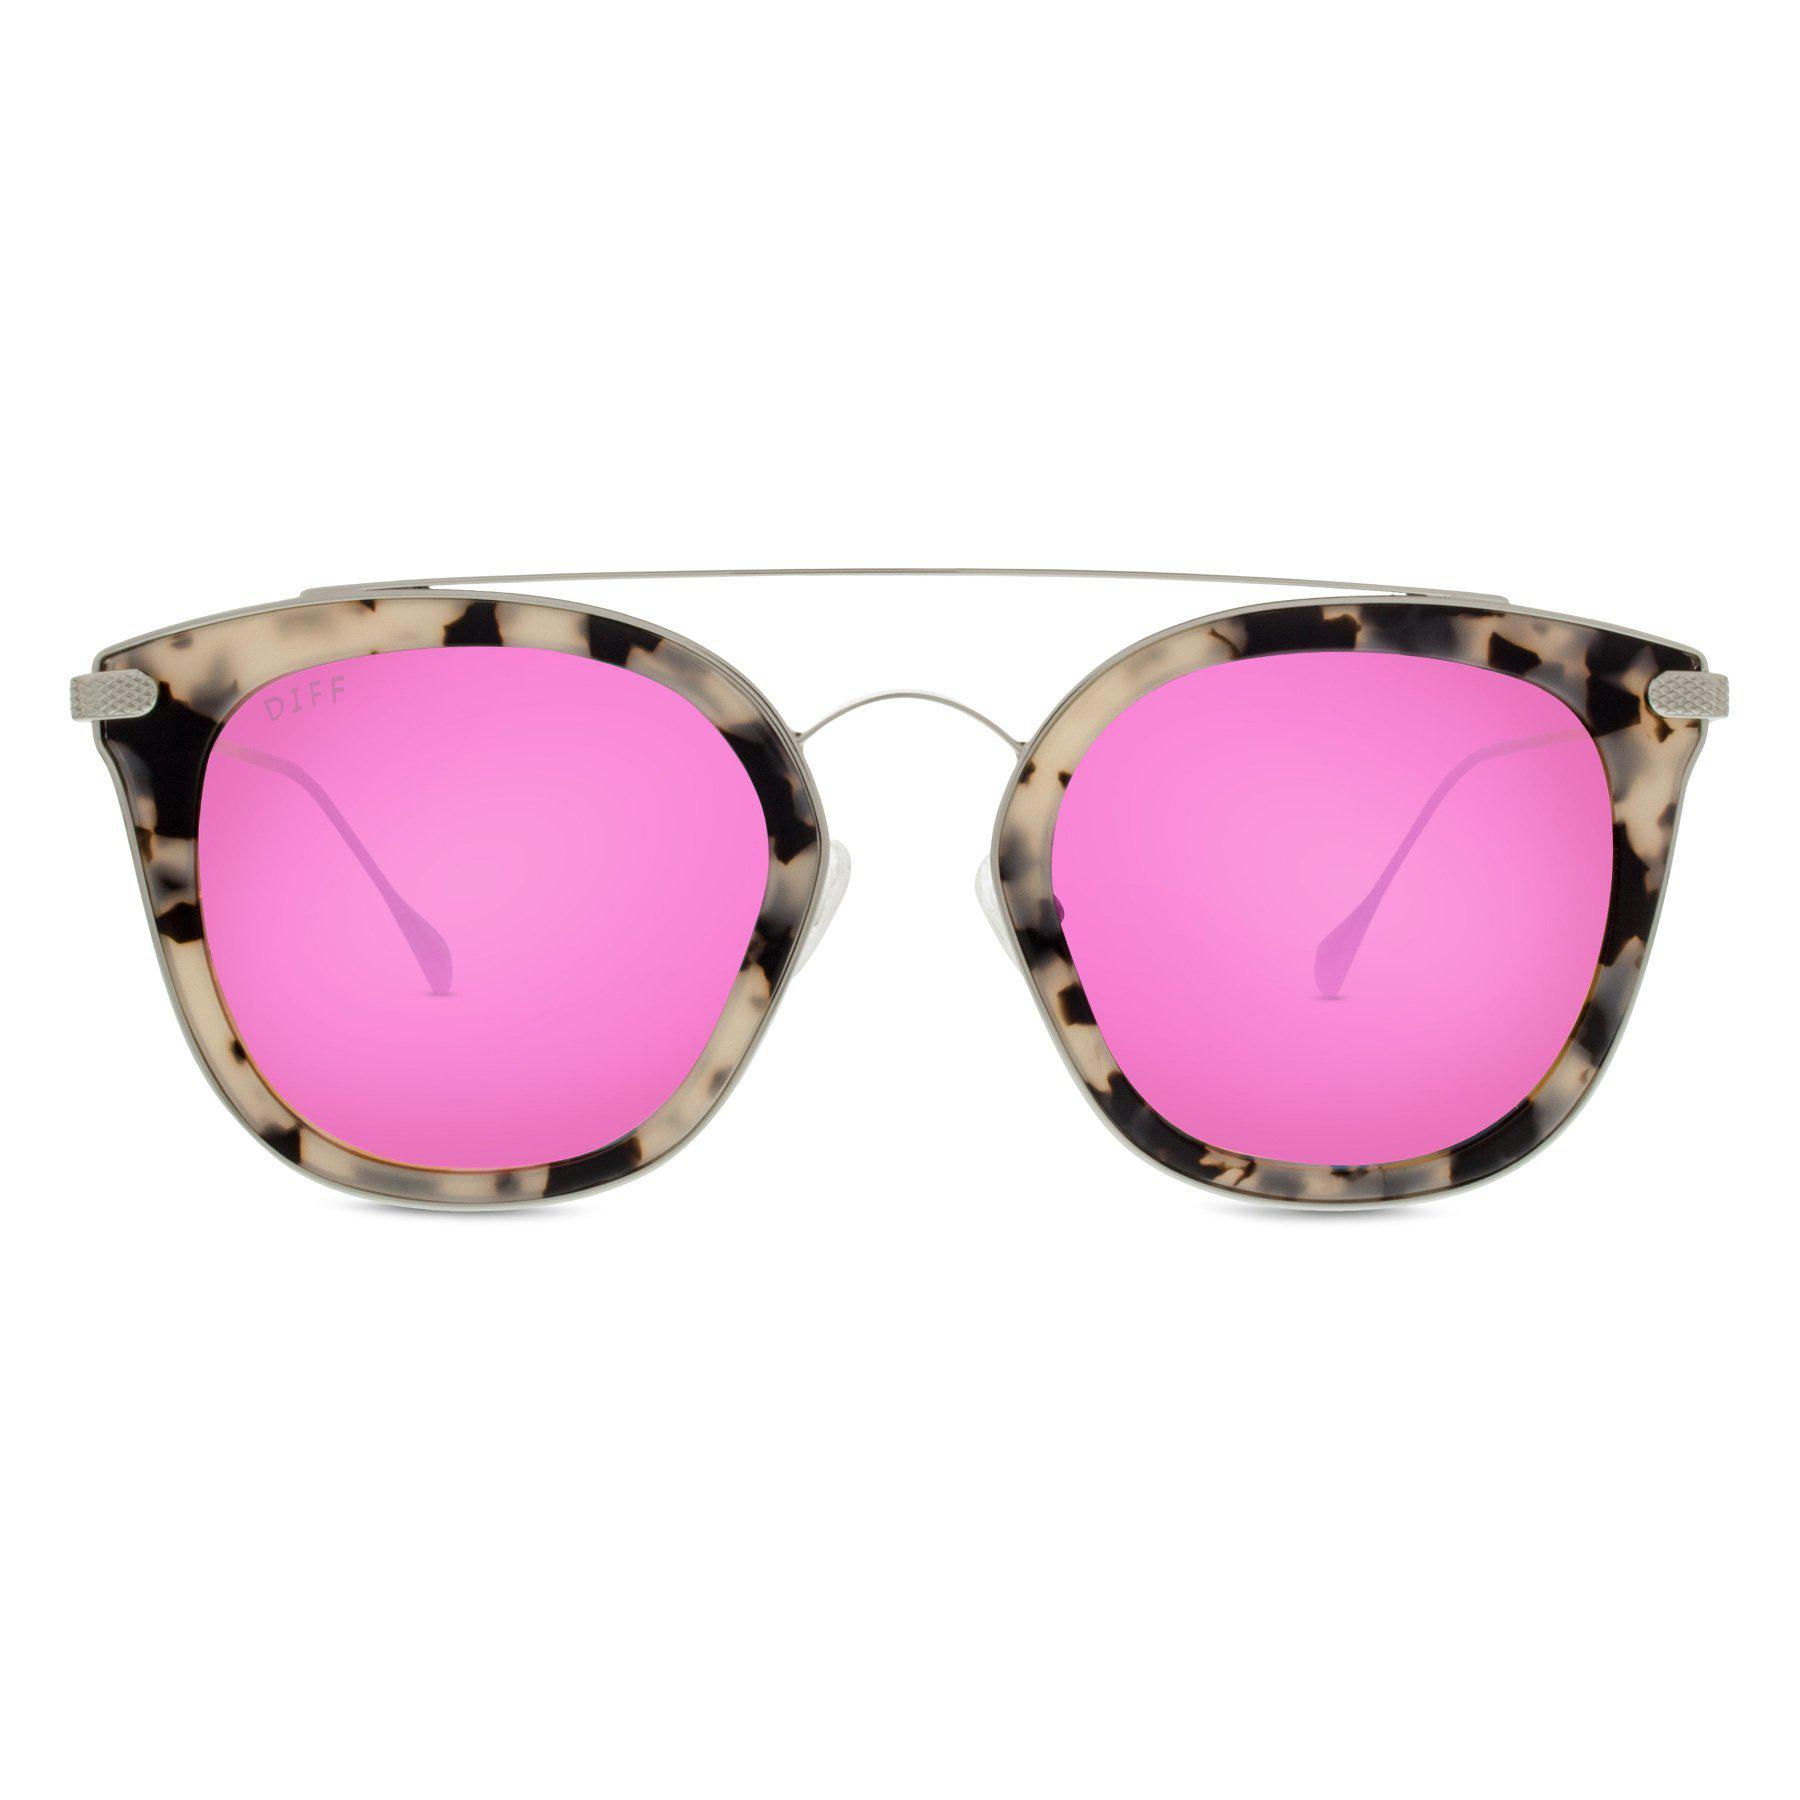 02f3a634a9 Lyst - DIFF Zoey - Cream Tortoise + Pink Mirror + Polarized in Pink